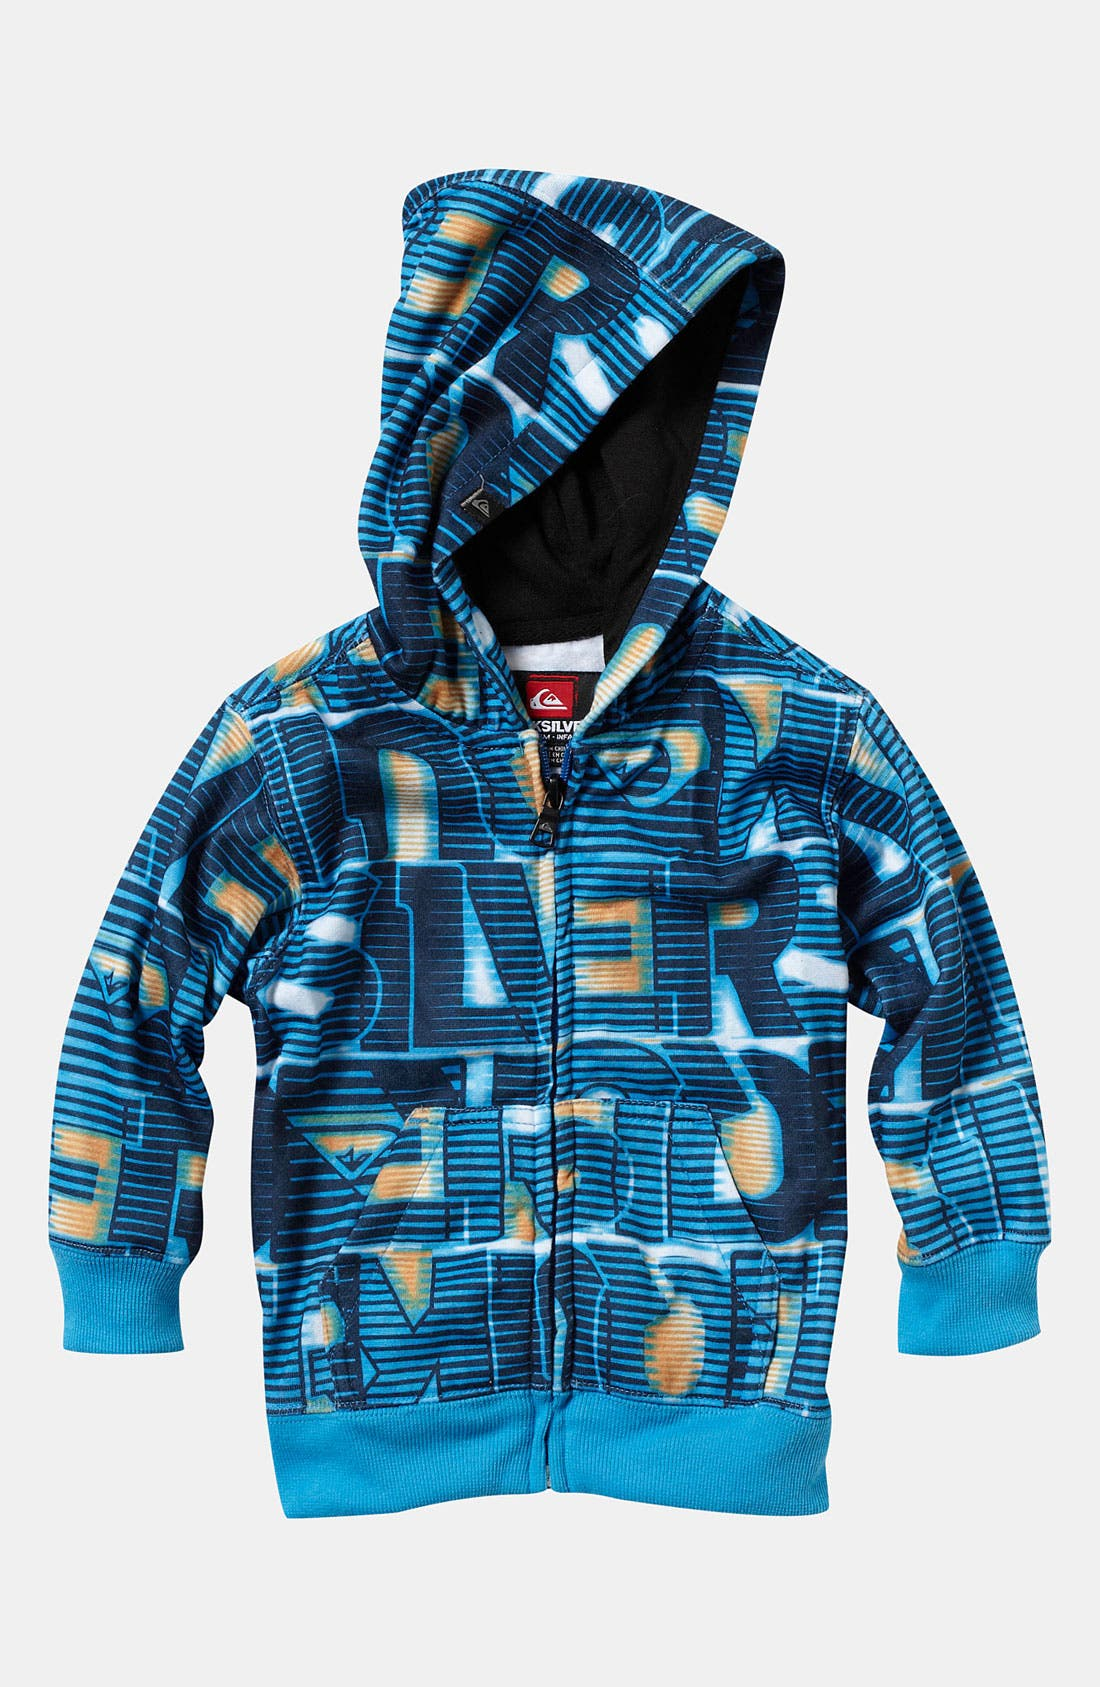 Alternate Image 1 Selected - Quiksilver 'The Tank' Hoodie (Little Boys)